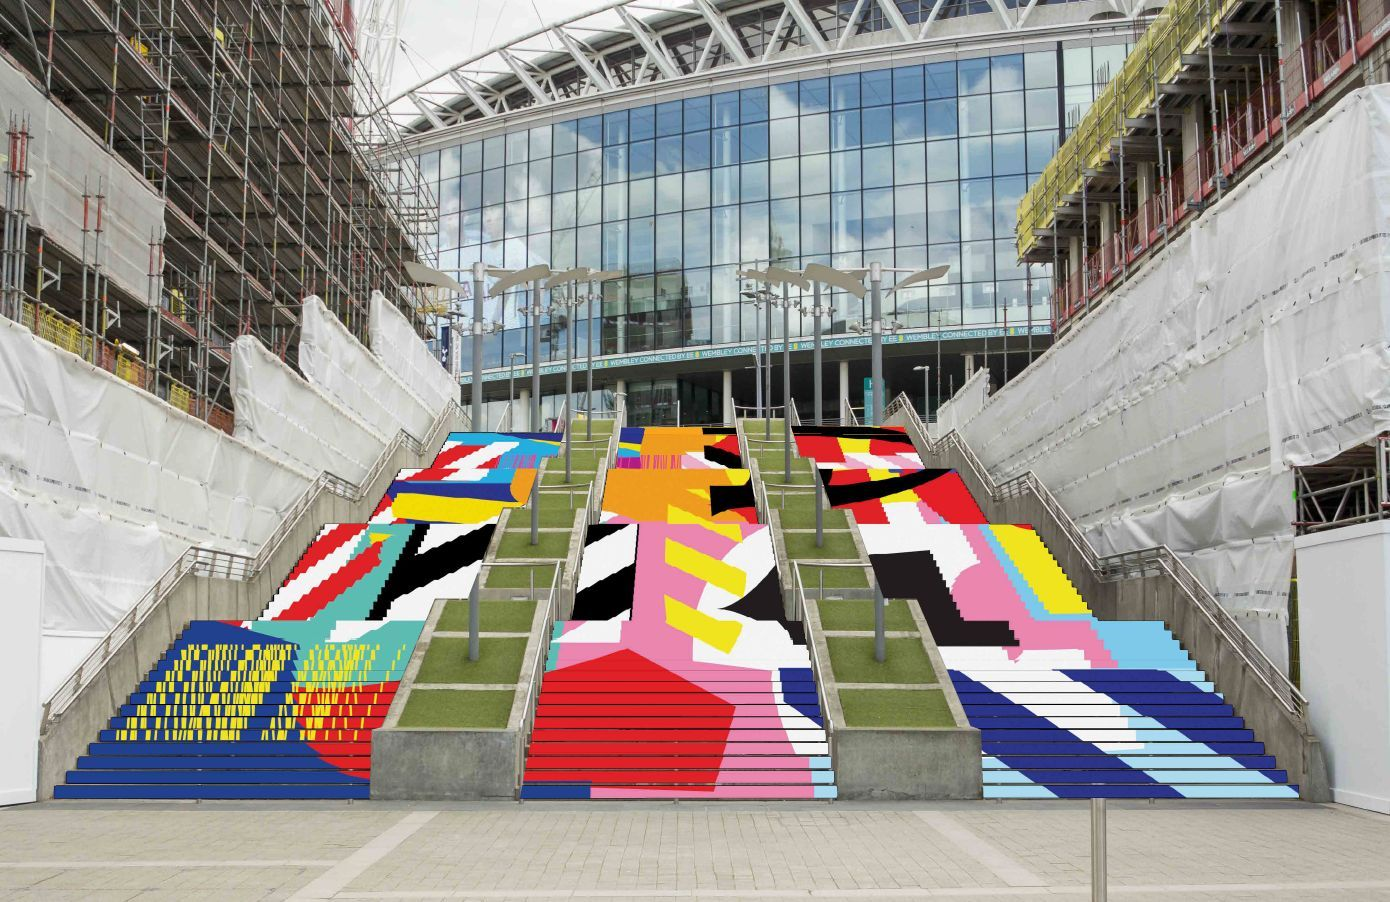 London Graphic Design - Wembley park steps